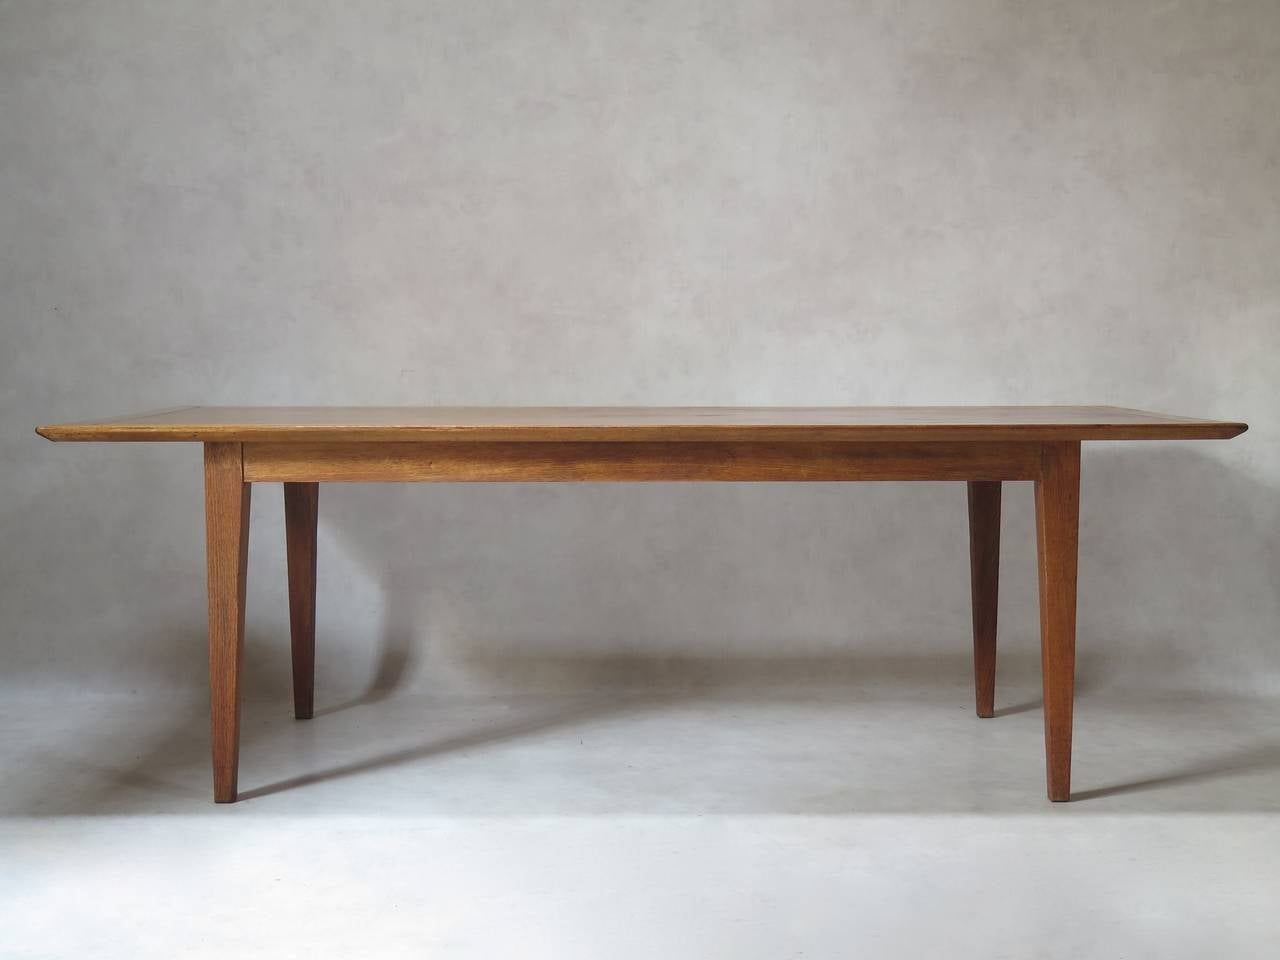 Japanese Inspired Oak Credenza And Dining Table By Colette